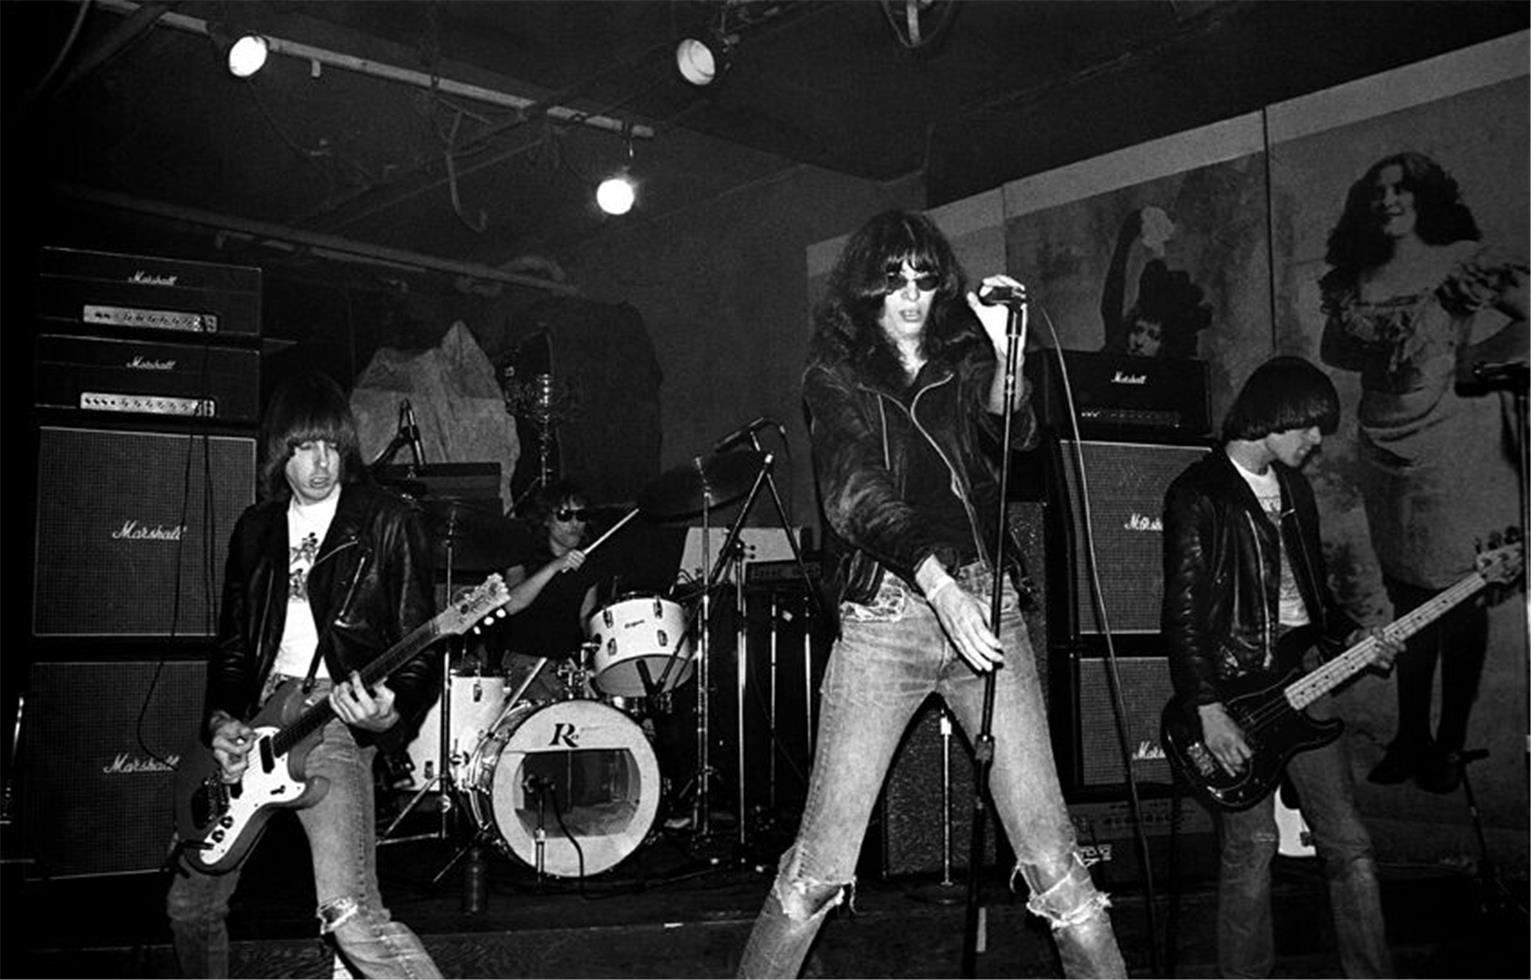 The Ramones at CBGBs in 1977